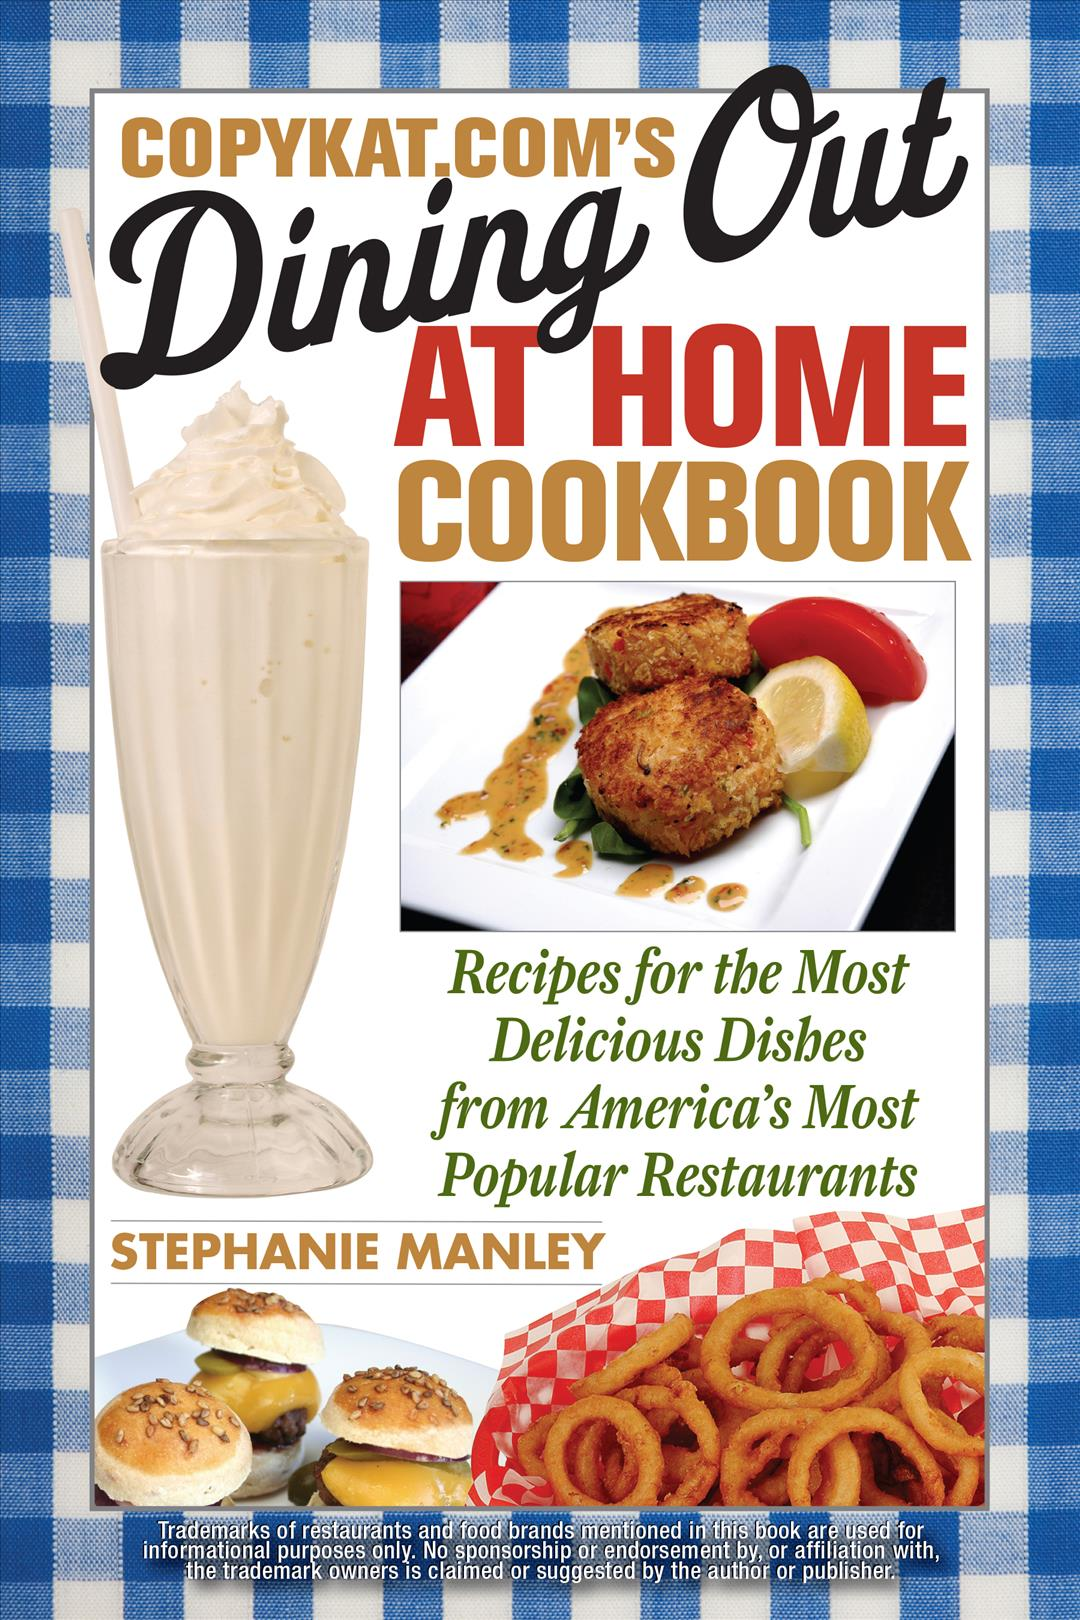 Copykat.com's Dining Out at Home Cookbook: Recipes for the Most Delicious Dishes from America's Most Popular Rest... (Paperback)